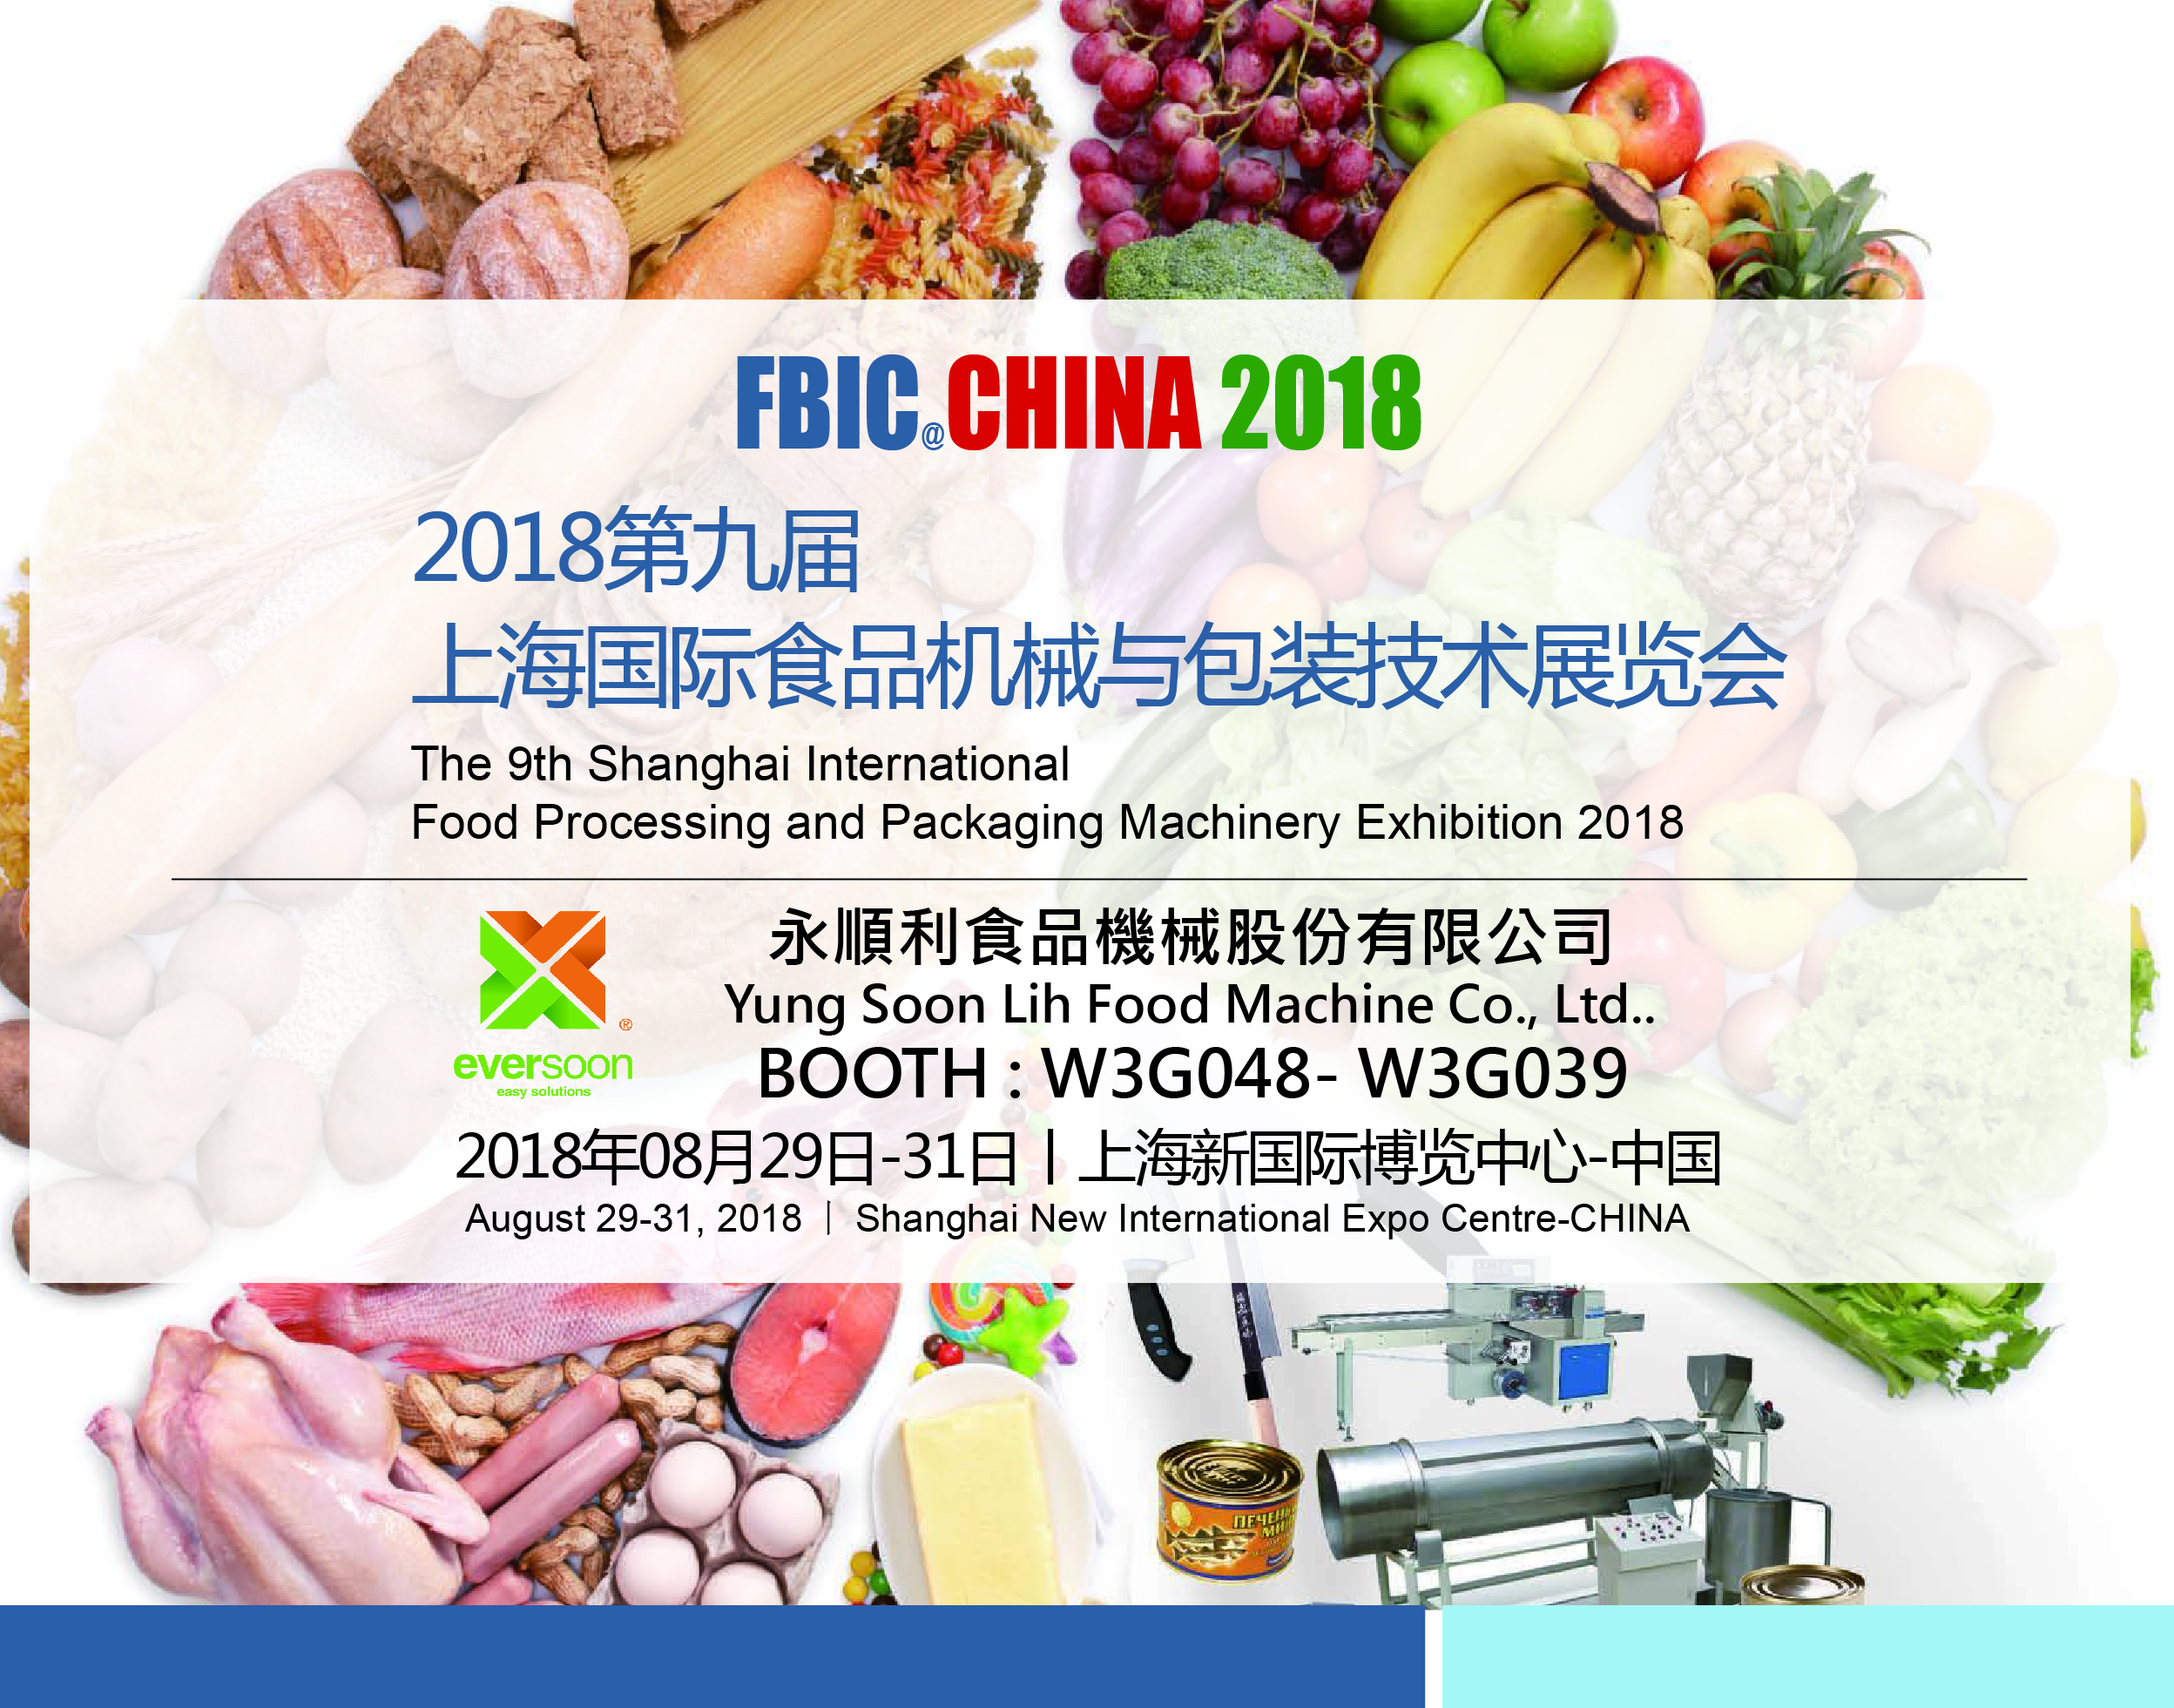 2018 The 9th Shanghai International Food Processing and